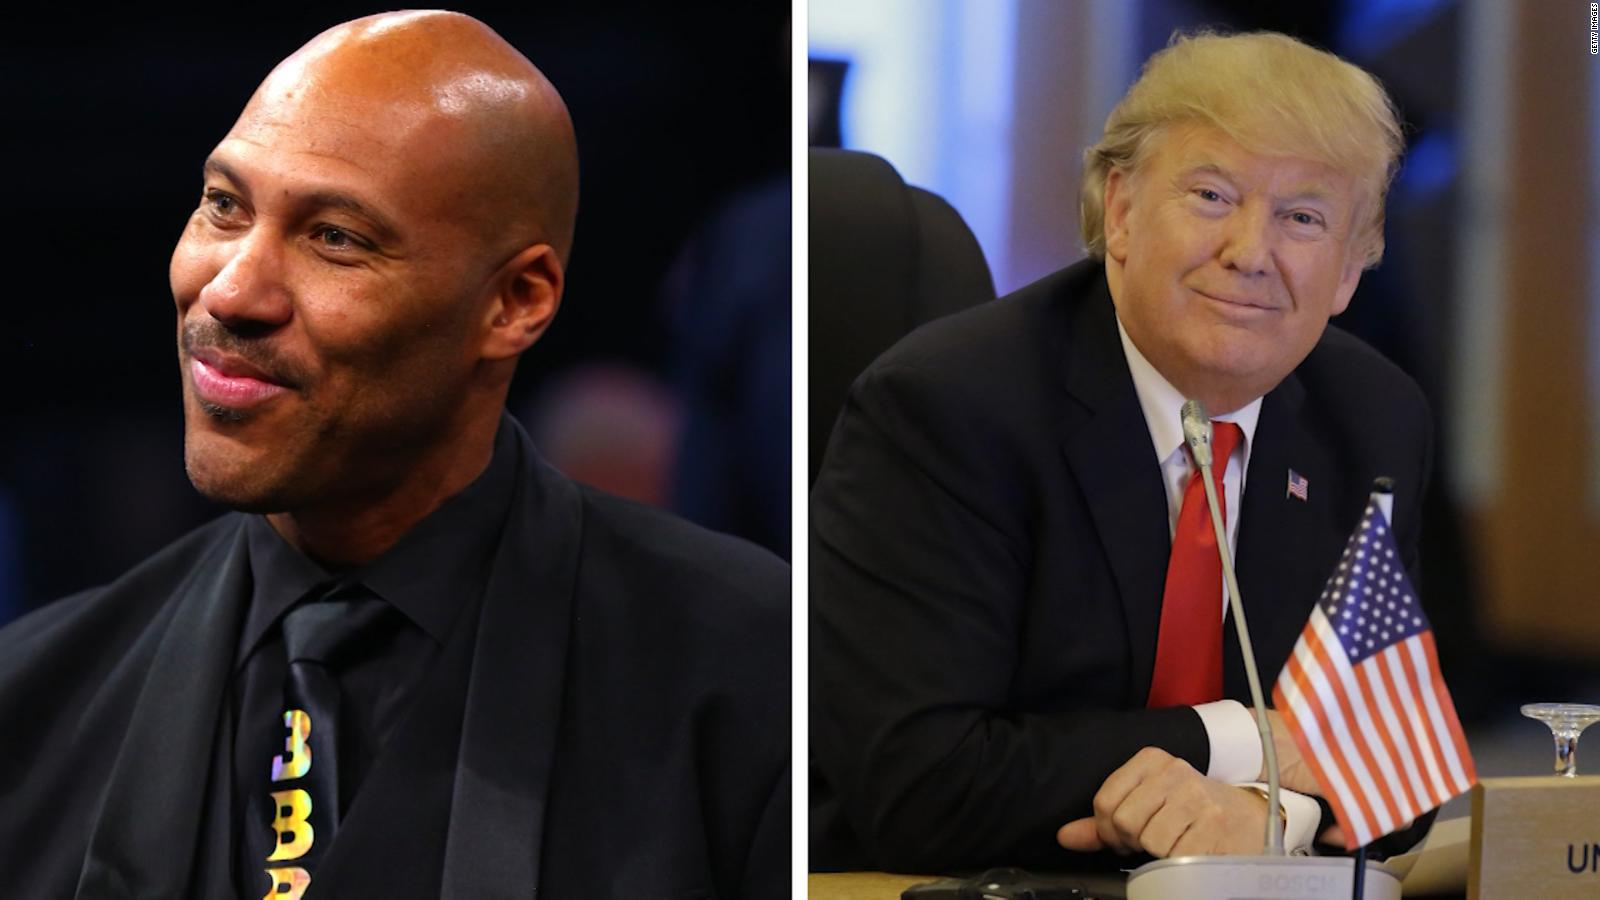 Trump to Lavar Ball: \u0027I should have left them in jail!\u0027 - CNNPolitics